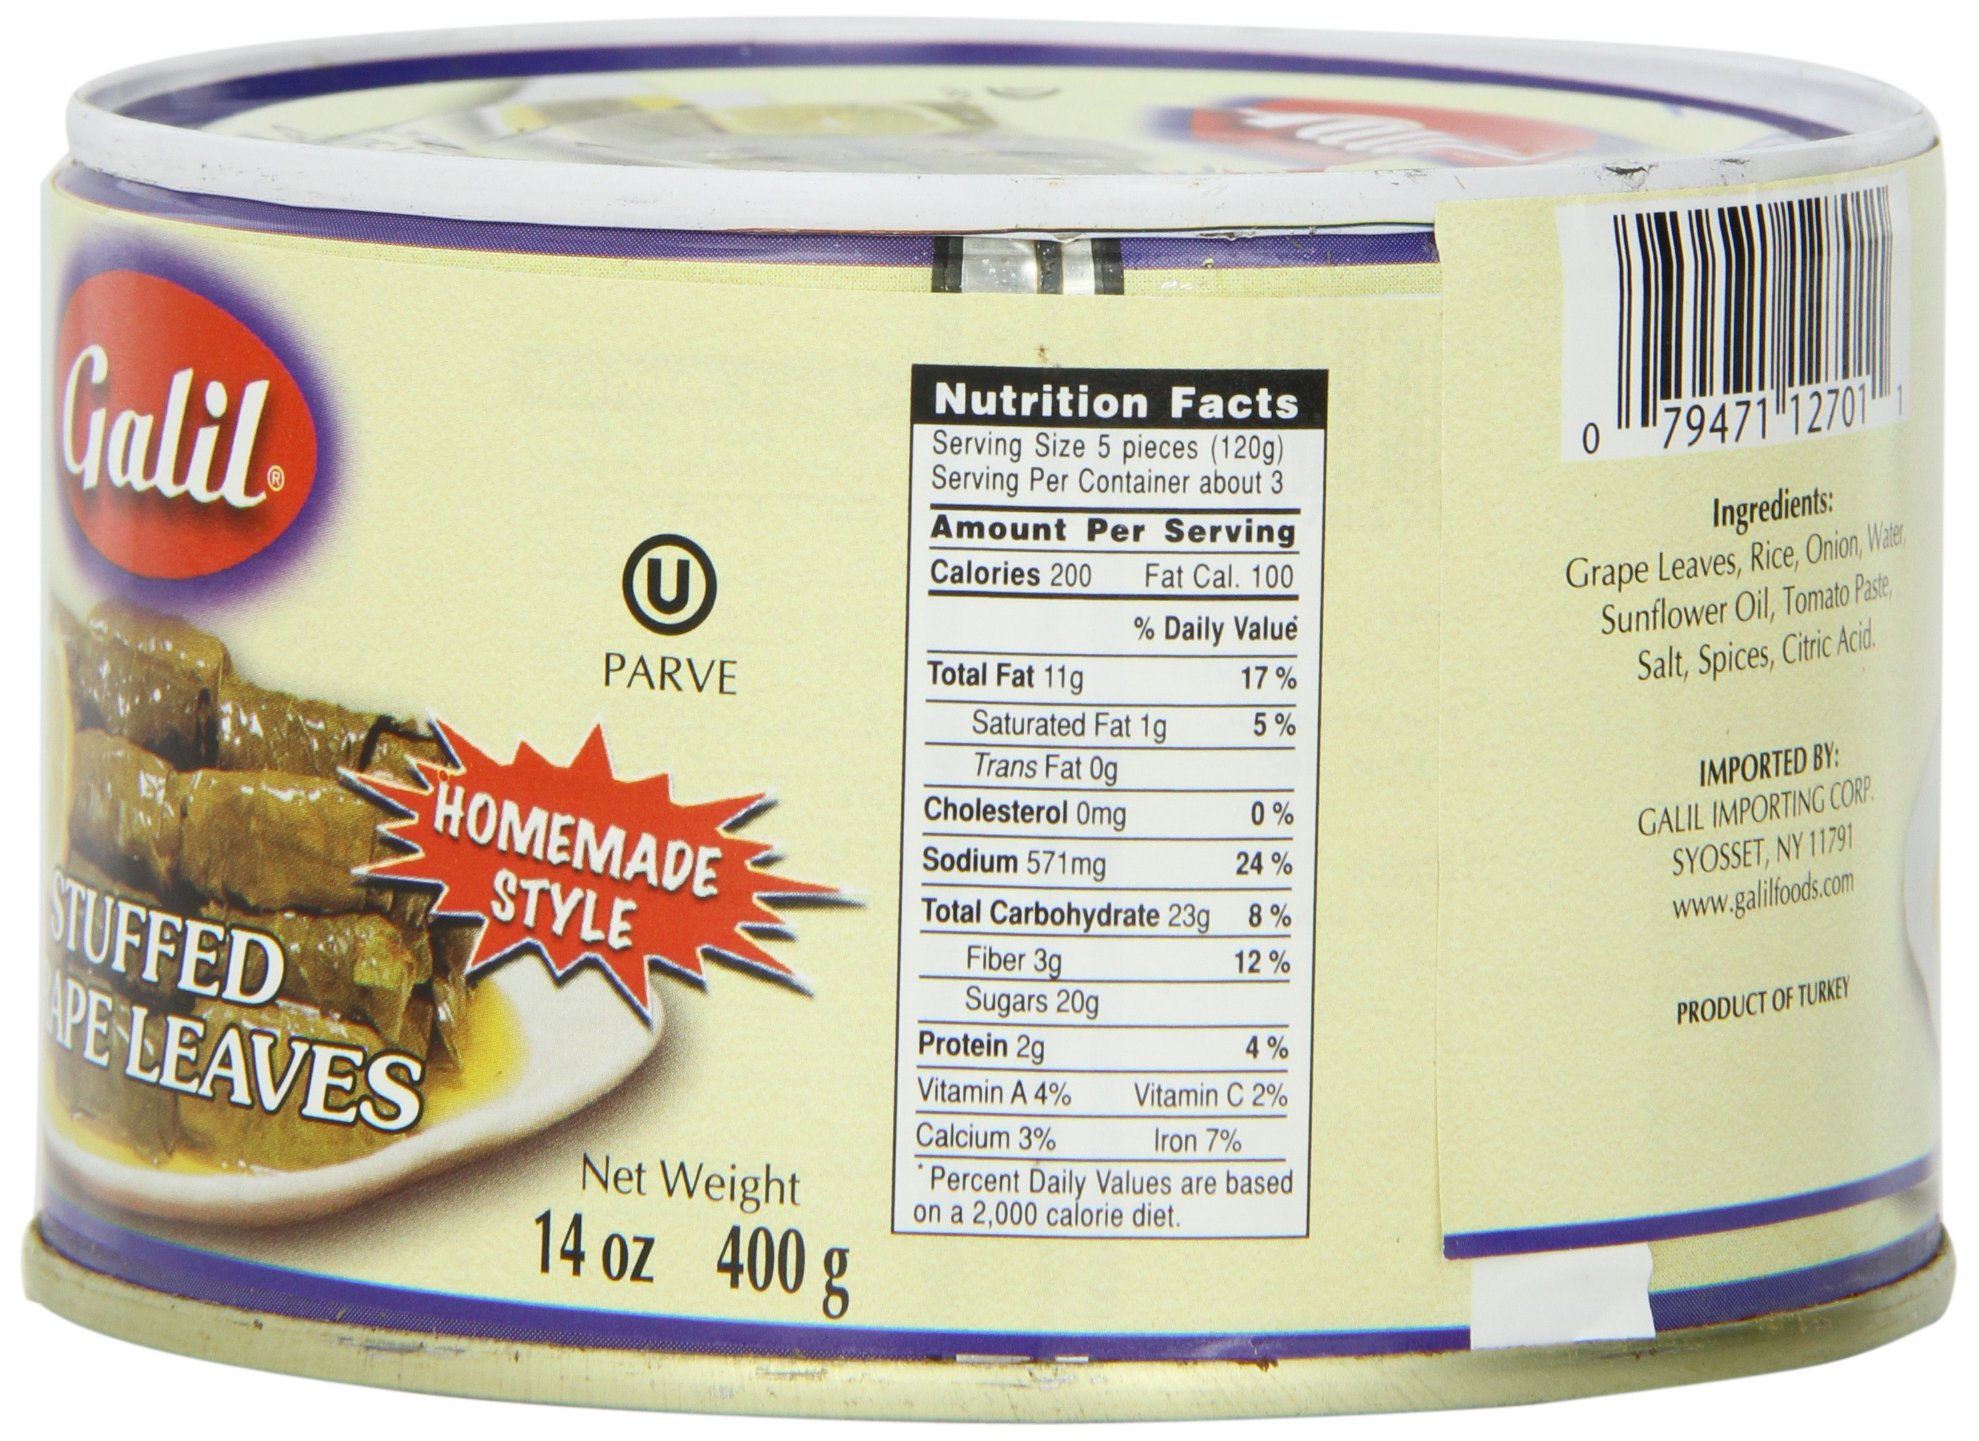 Galil Stuffed Grape Leaves Non-GMO, 14-Ounce Cans (Pack of 12) by Galil (Image #1)